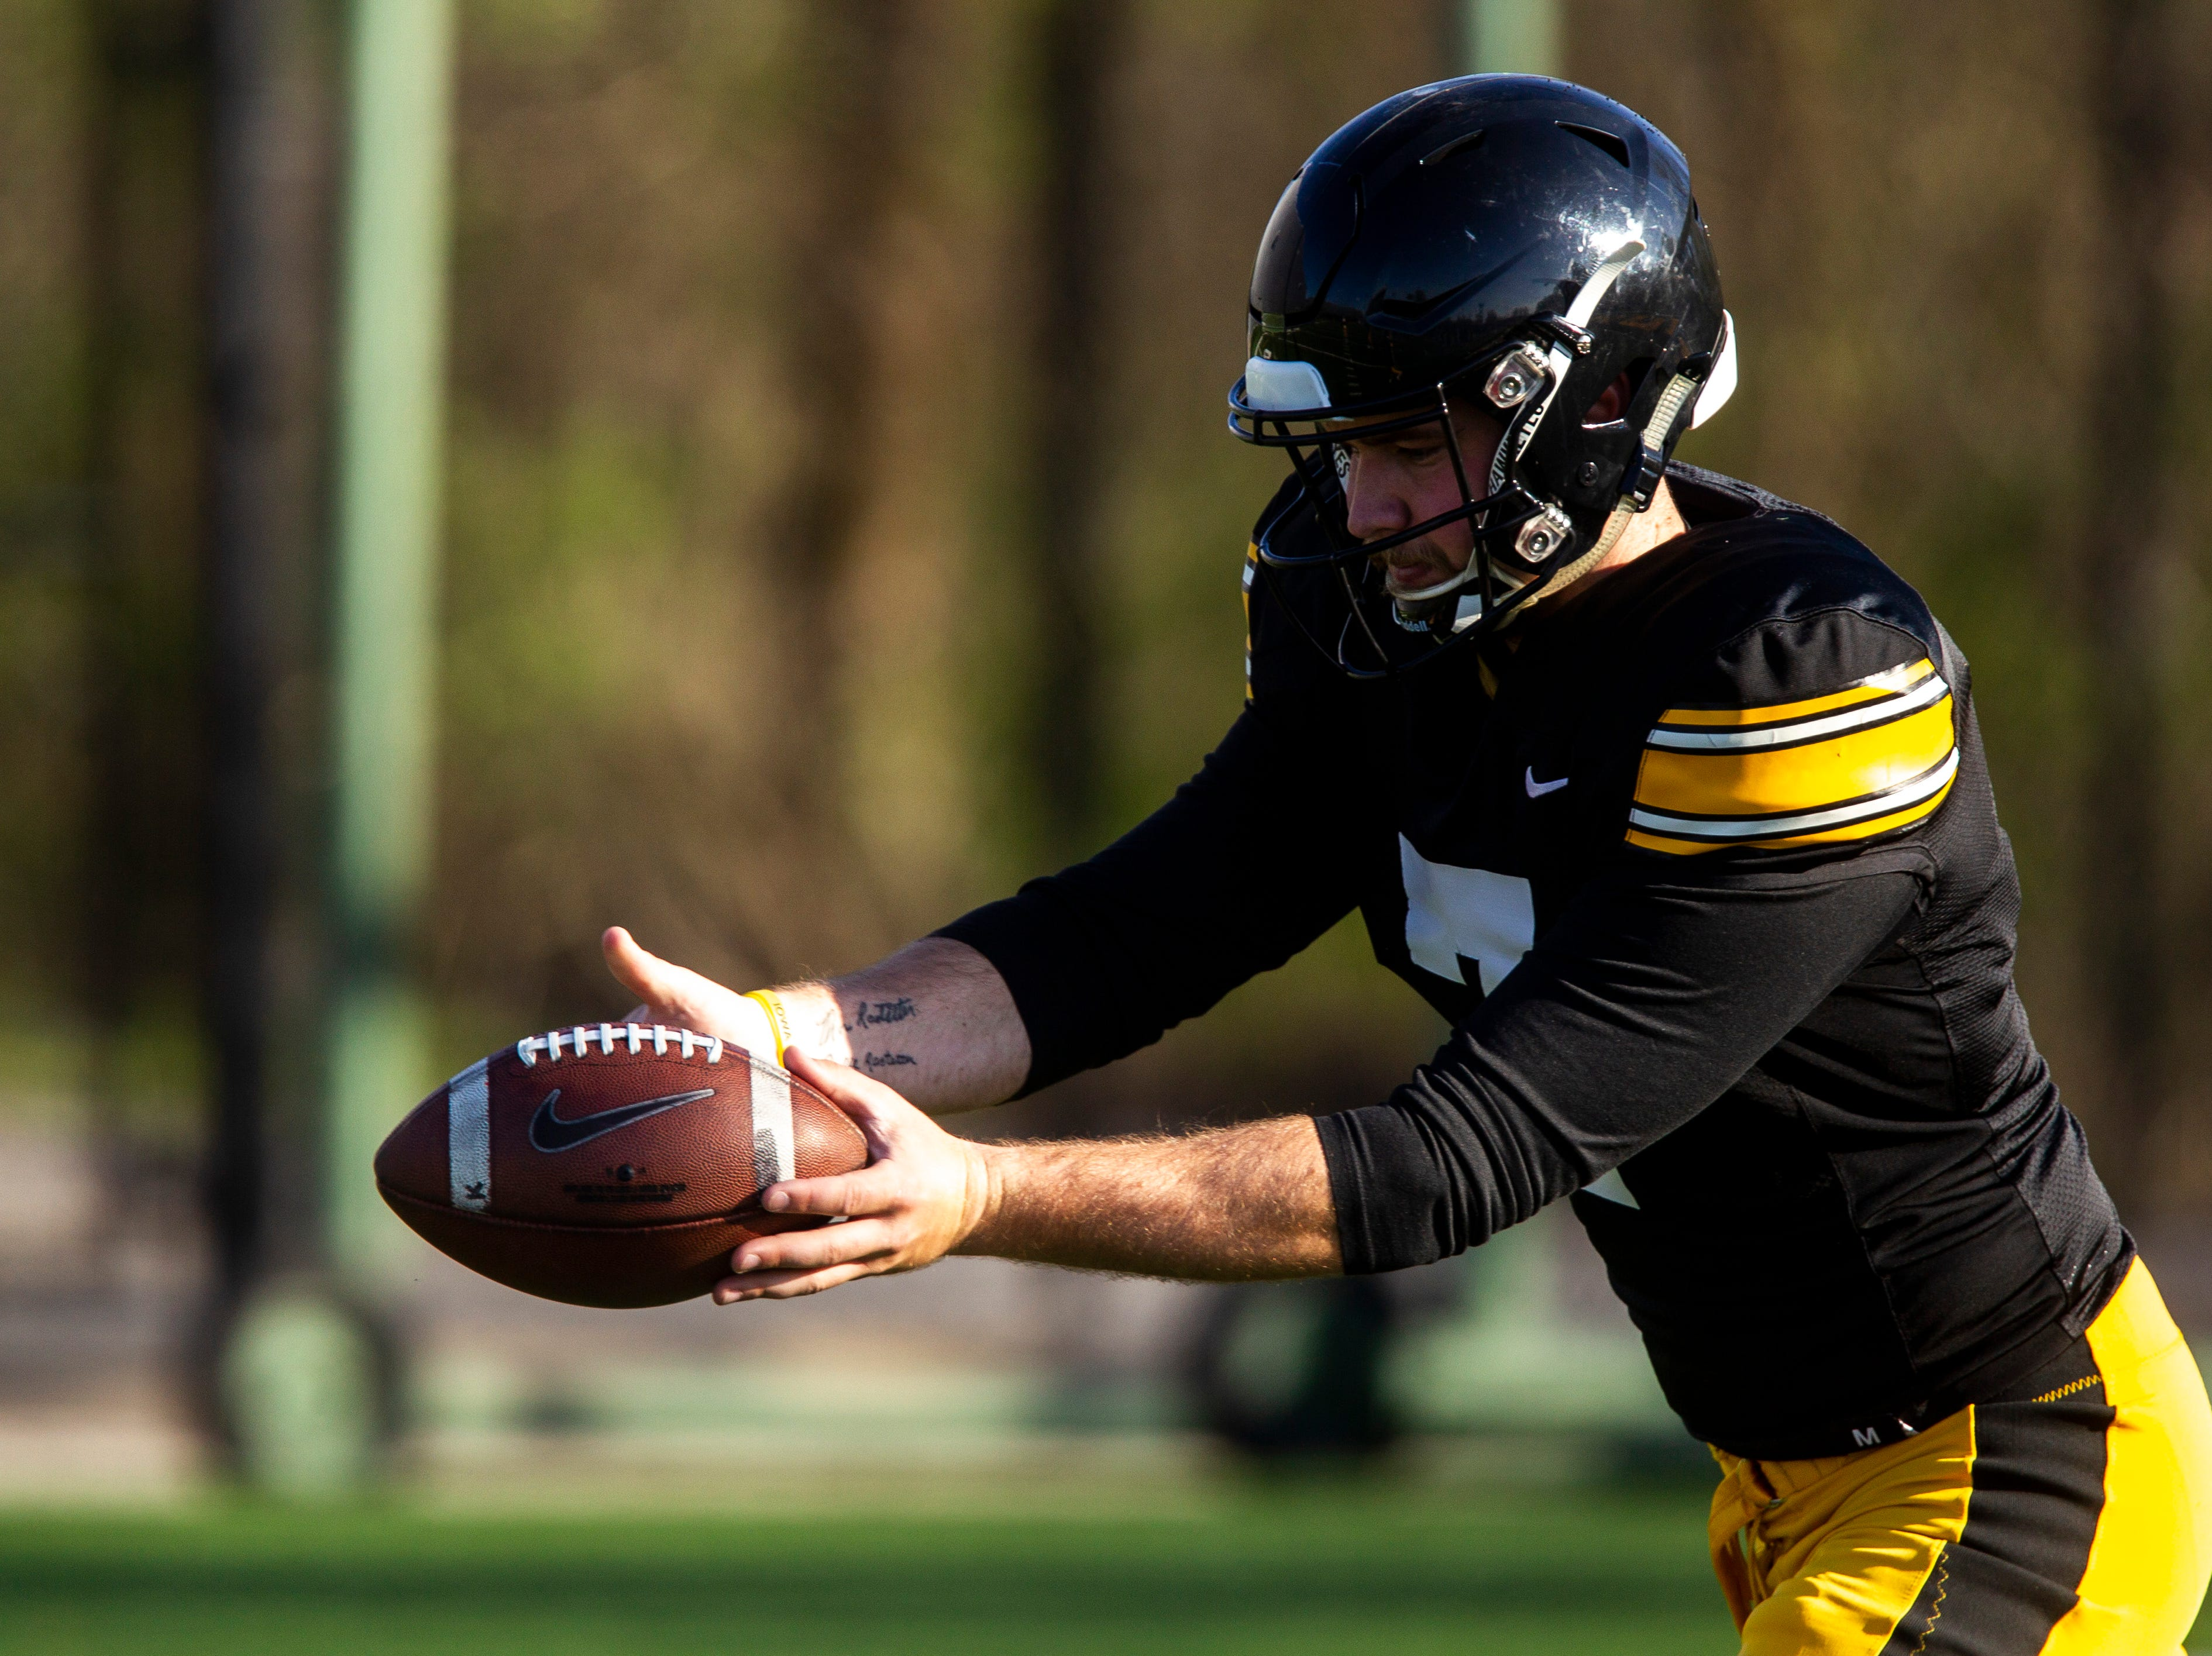 Iowa's Colten Rastetter (7) punts during the final spring football practice, Friday, April 26, 2019, at the University of Iowa outdoor practice facility in Iowa City, Iowa.